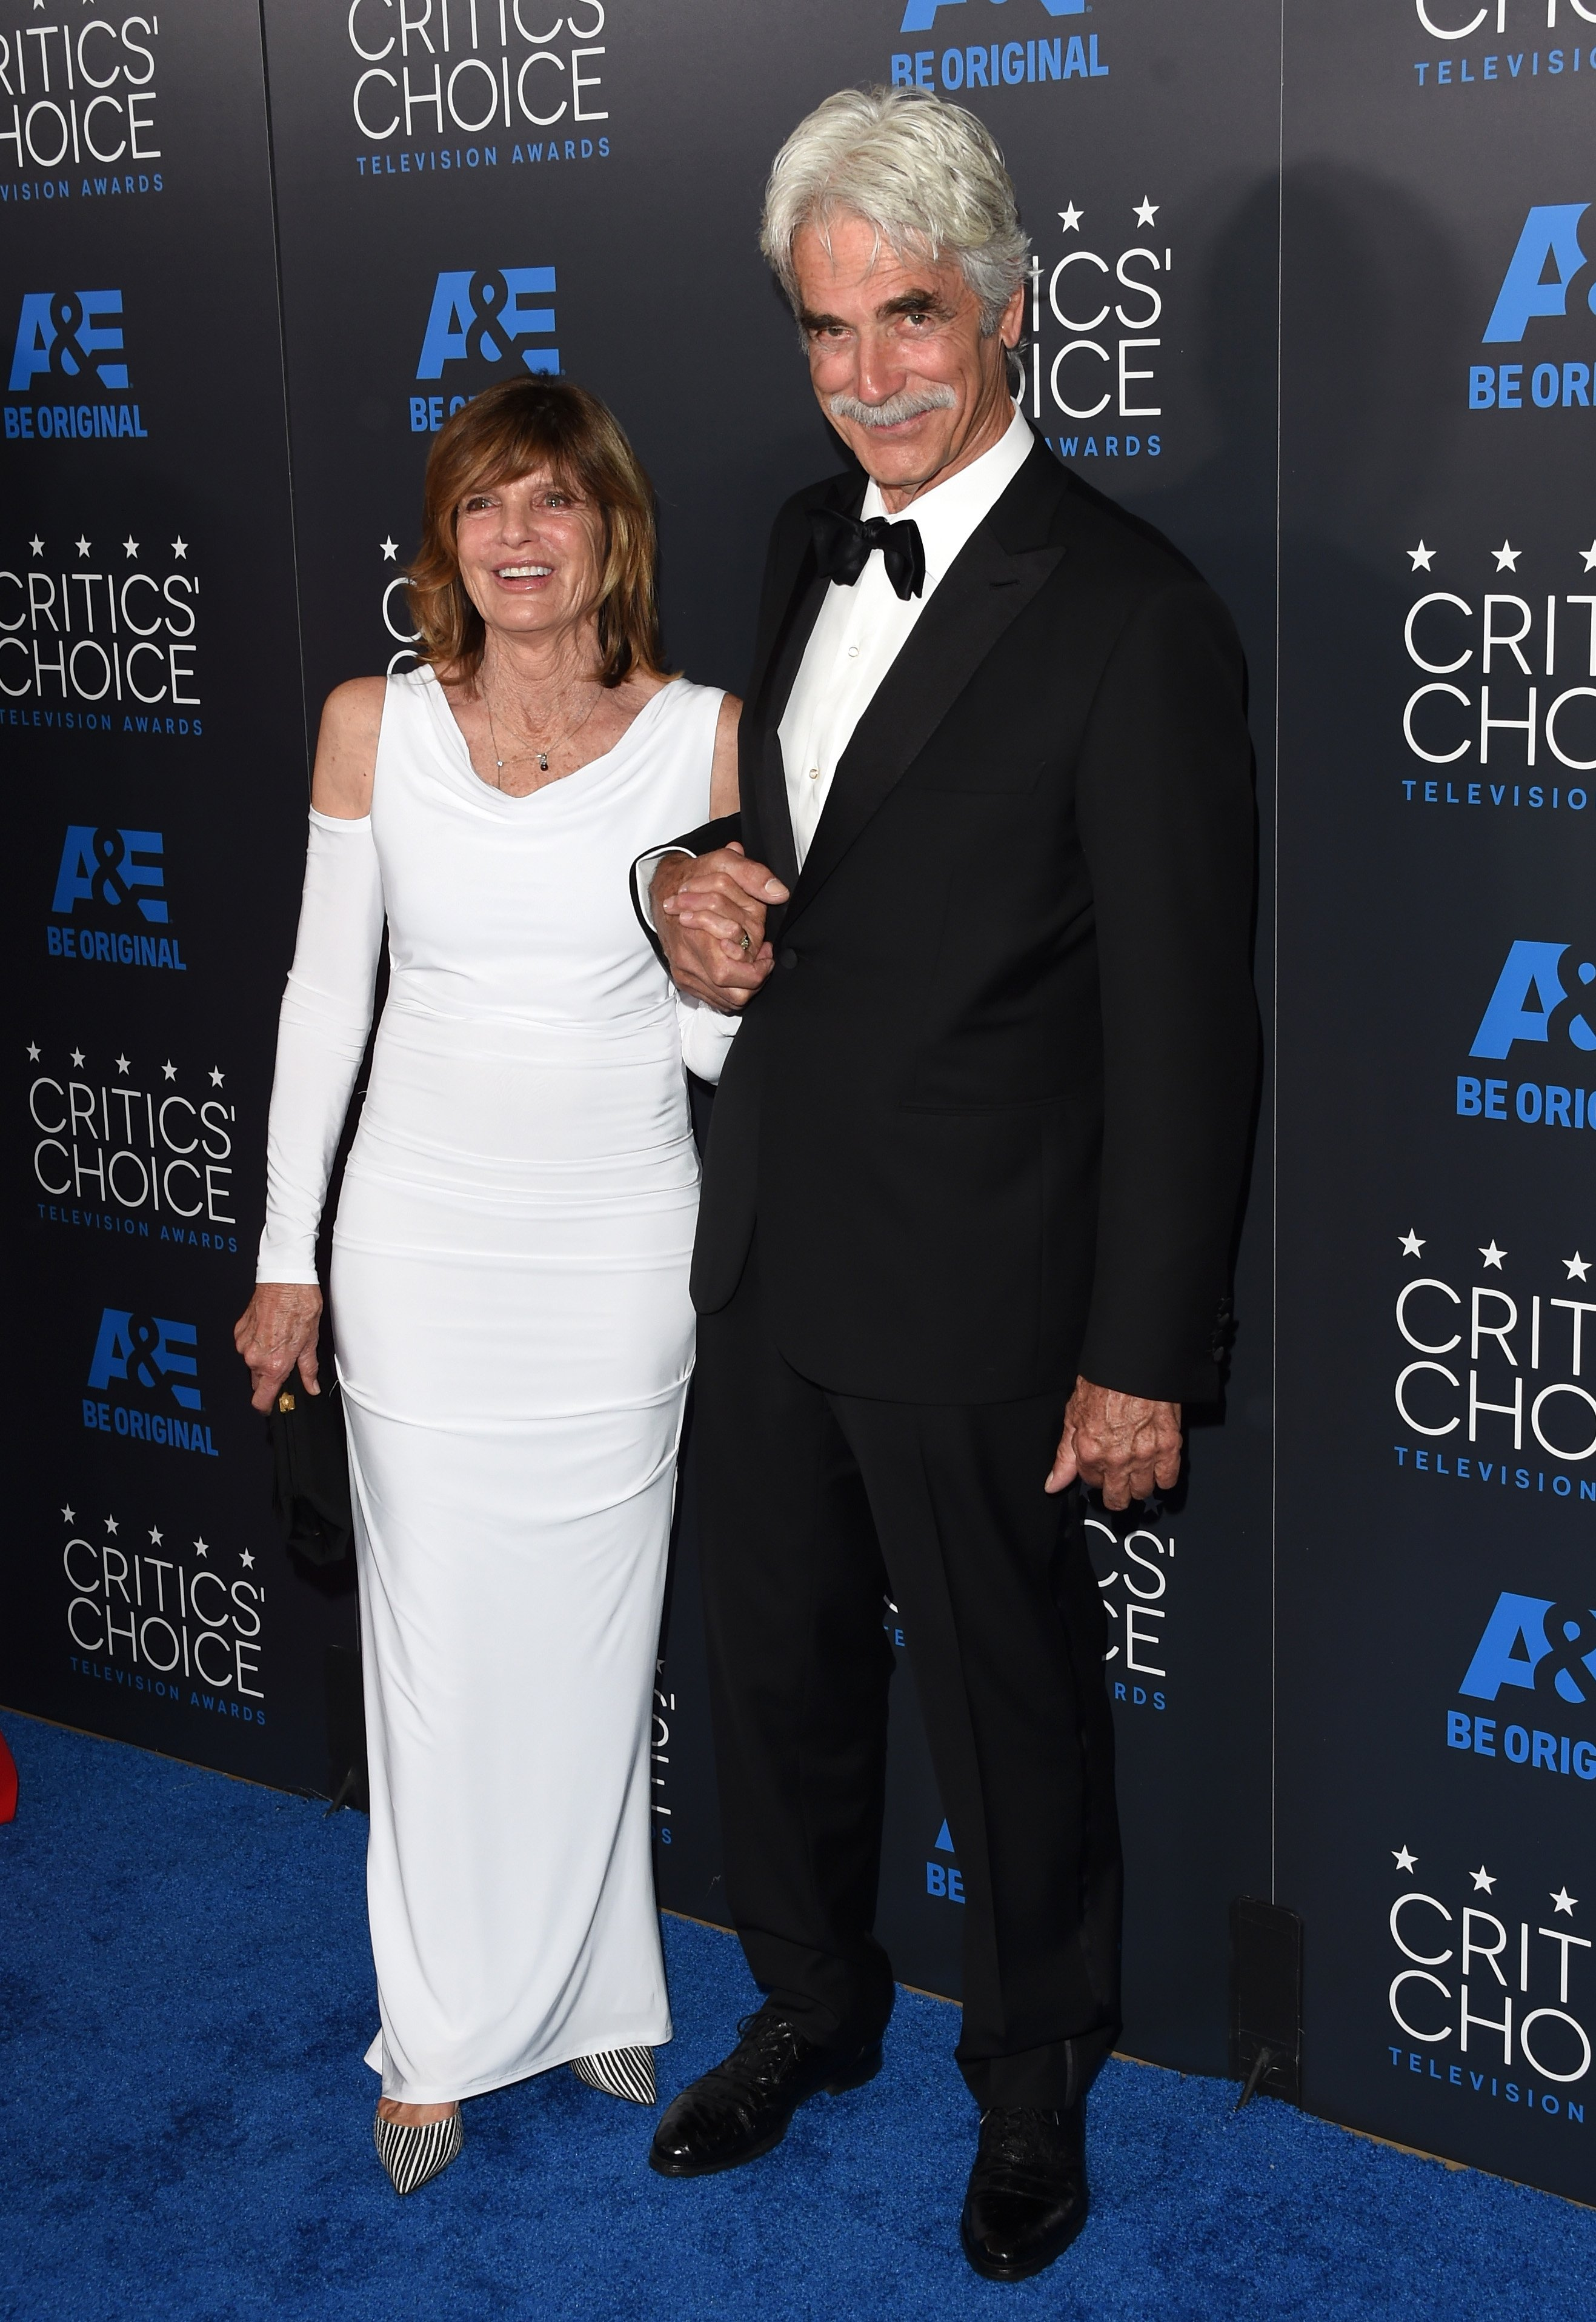 Western TV and movie star Sam Elliott and actress Katherine Ross attend the 2015 Annual Critics' Choice Television Awards in Beverly Hills. | Photo: Getty Images